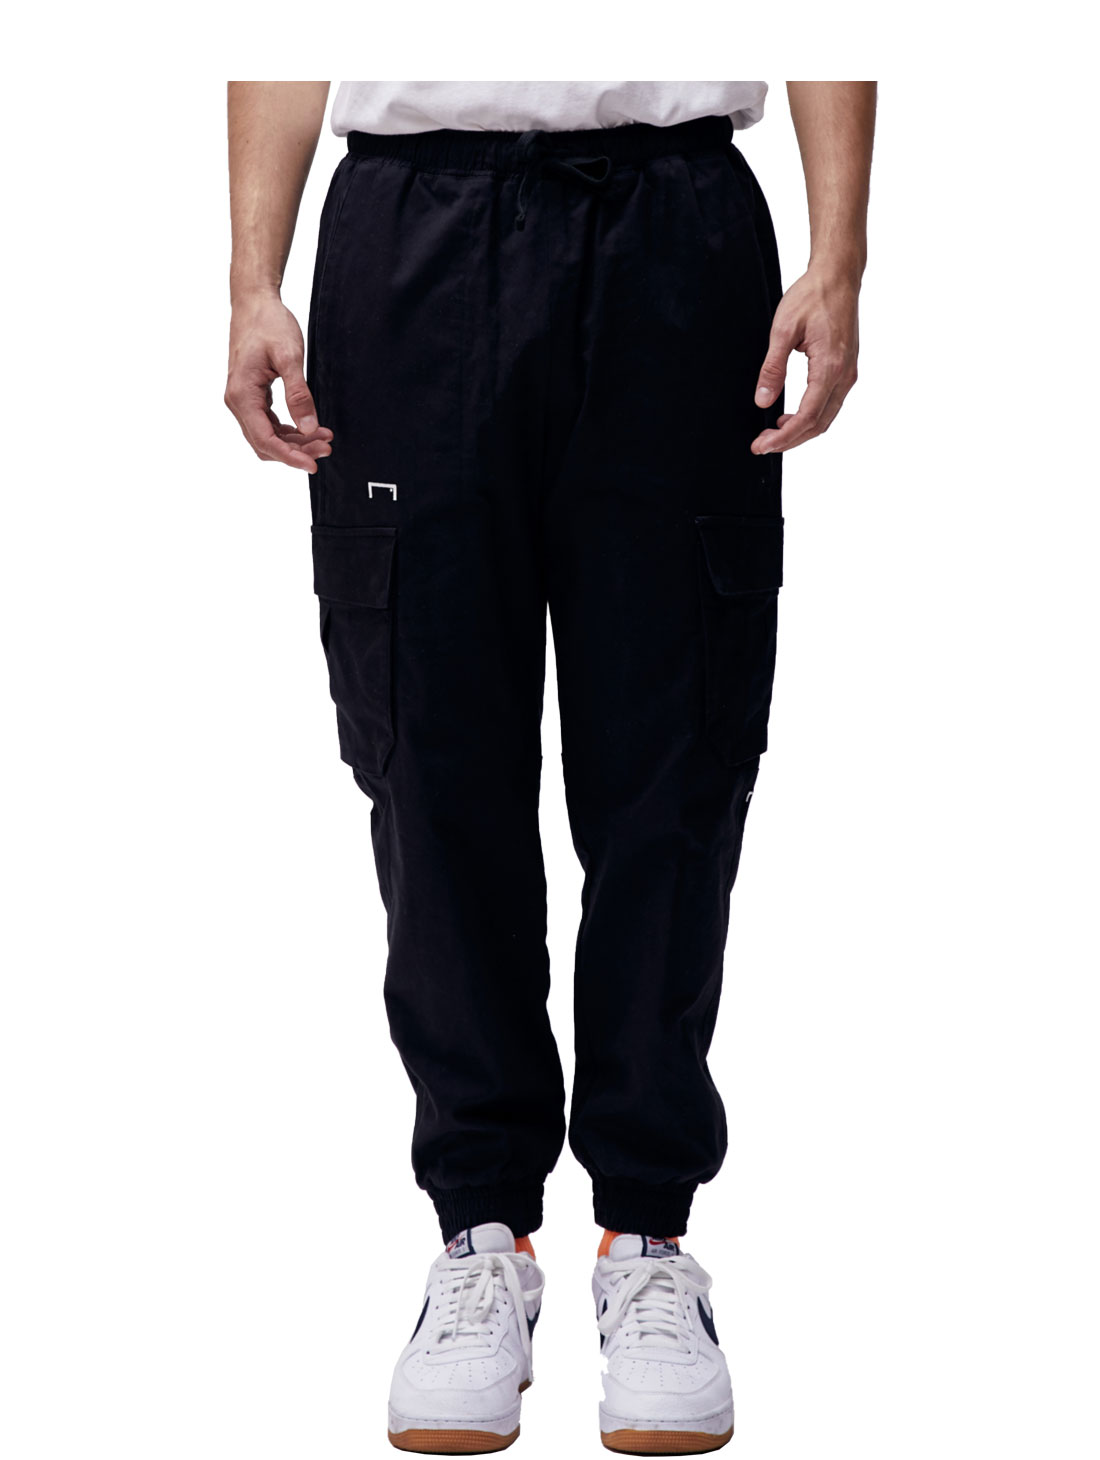 (Sold Out) CARGO JOGGER PANTS - BLACK